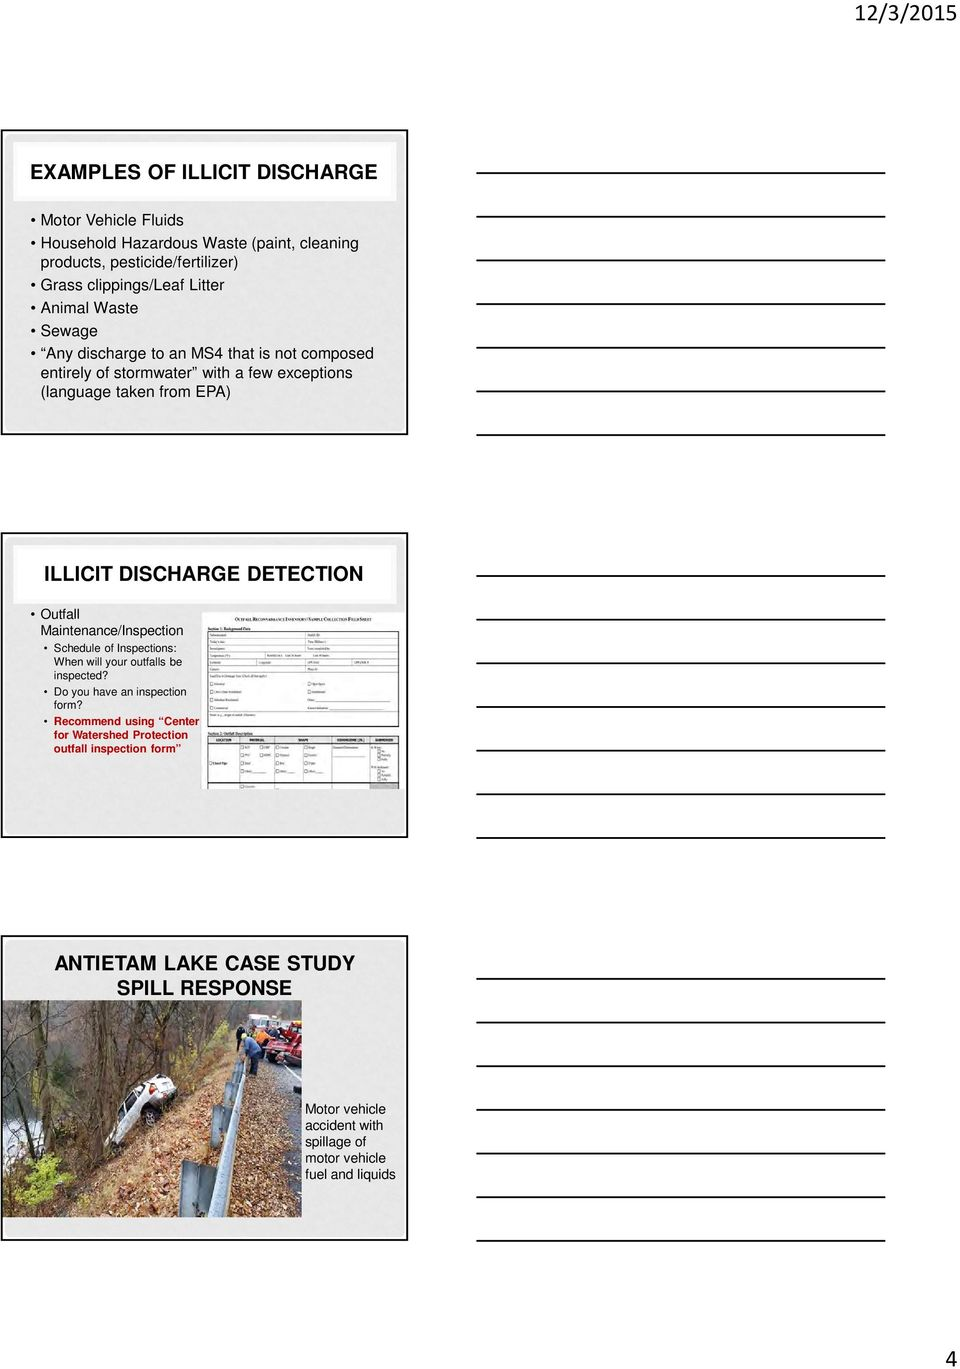 DETECTION Outfall Maintenance/Inspection Schedule of Inspections: When will your outfalls be inspected? Do you have an inspection form?